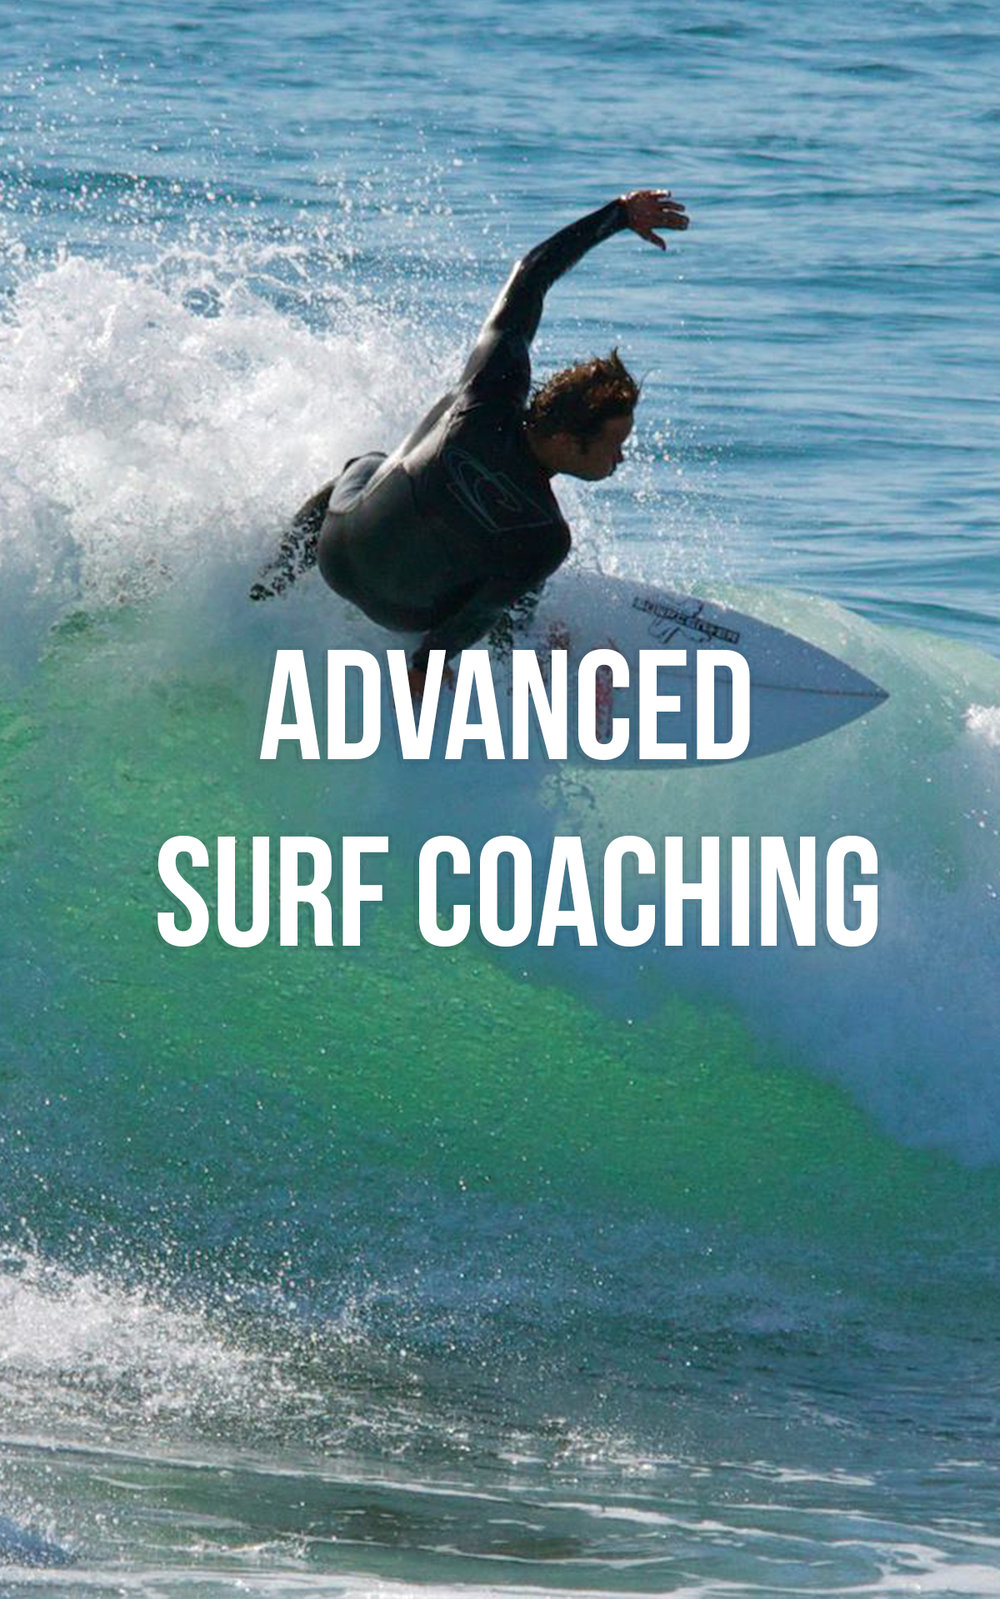 Advanced Surf Coaching.jpg